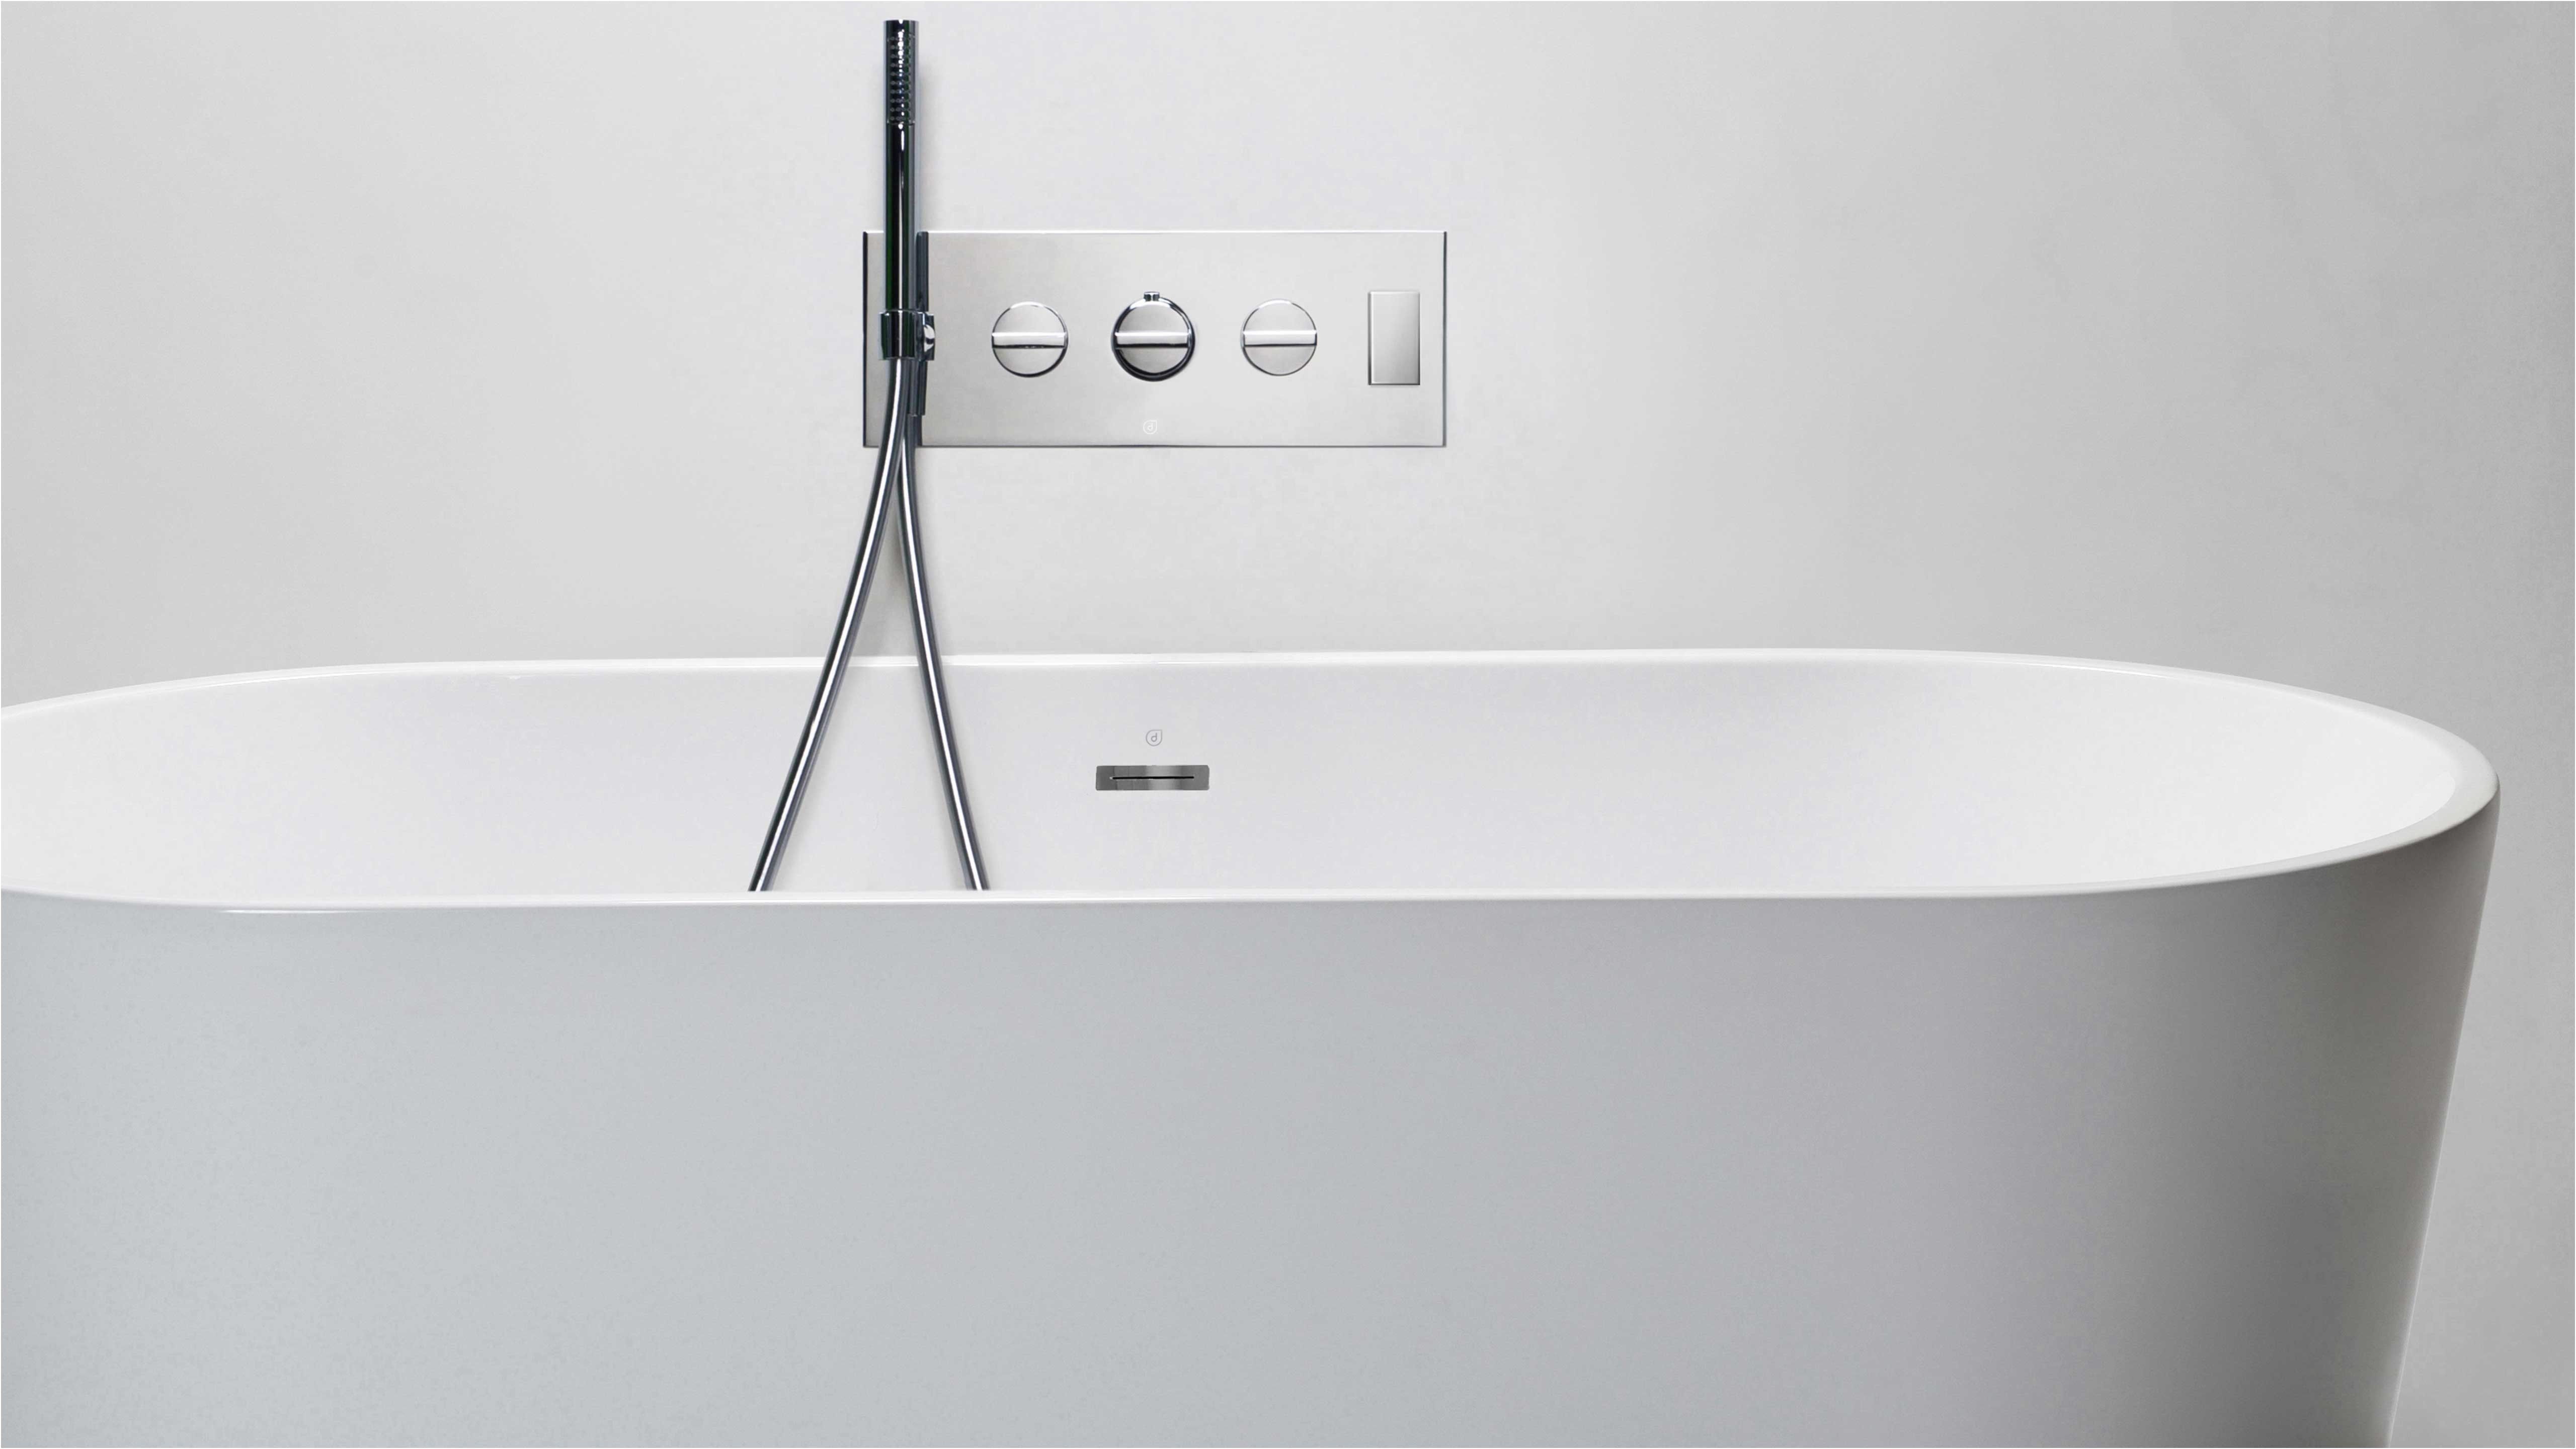 bath fixtures vancouver bc faucetsfaucets plumbing supplies from bathroom fixtures vancouver bc